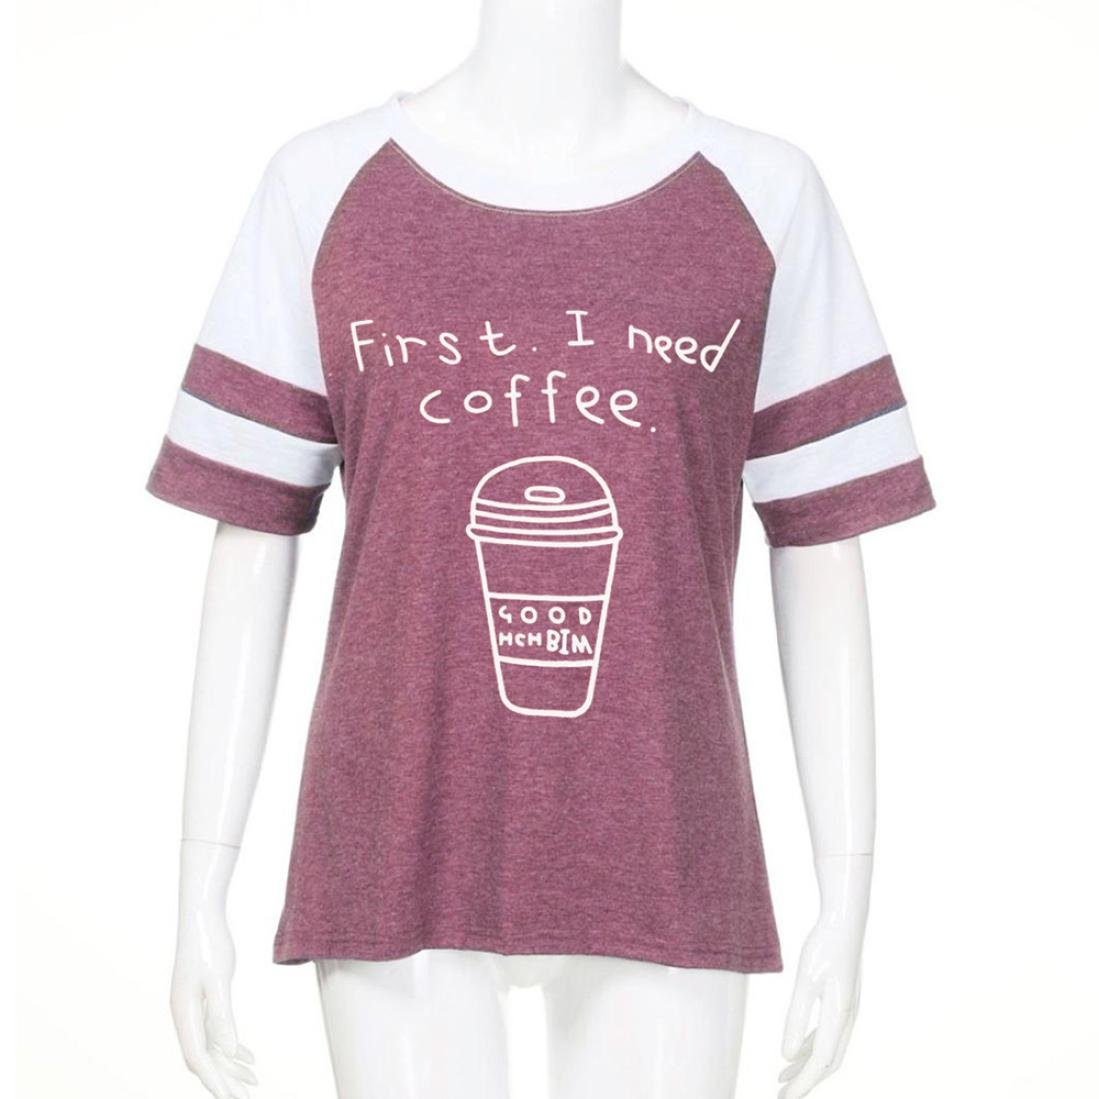 Perman Summer Fashion Cool Loose Fit Short Sleeve O Neck Torch Tshirt Women Burgundy Maroon Xl First I Need Coffee Prints Tops Tee T Shirt For Sale Clothing